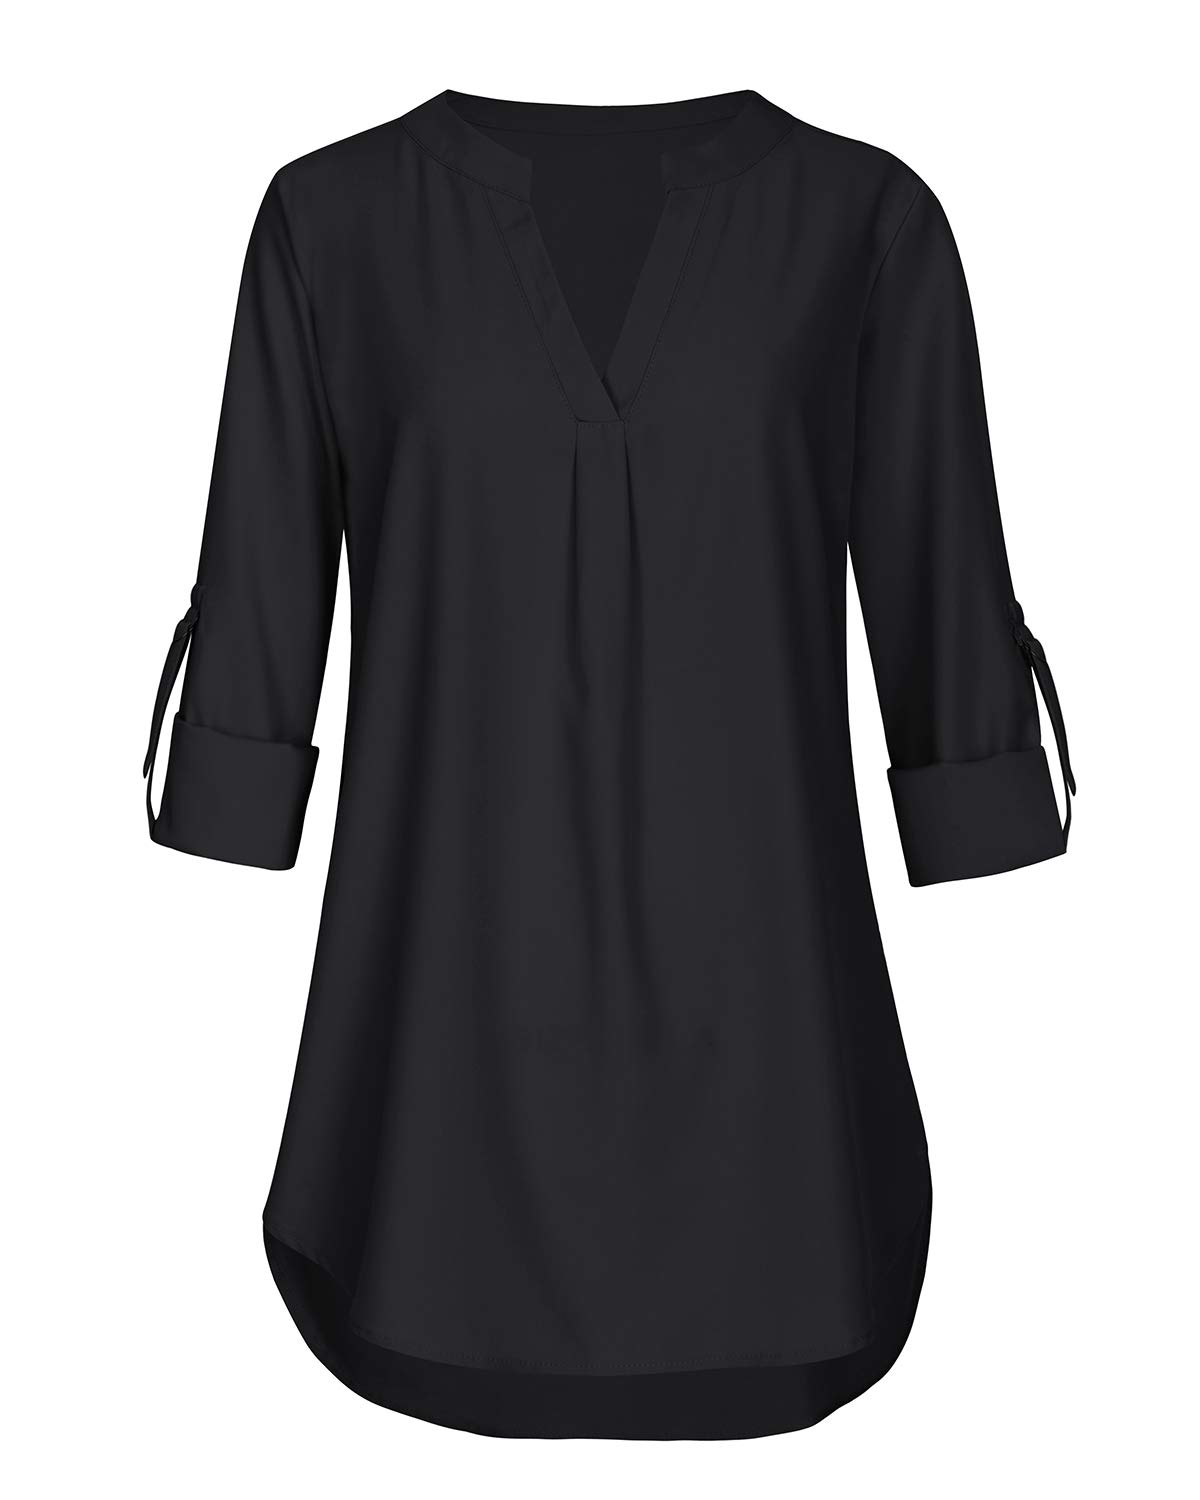 Business Casual Tops for Women V Neck Short Sleeve Tunics Knit Comfy Flattering Blouse T Shirt (Black, Large)